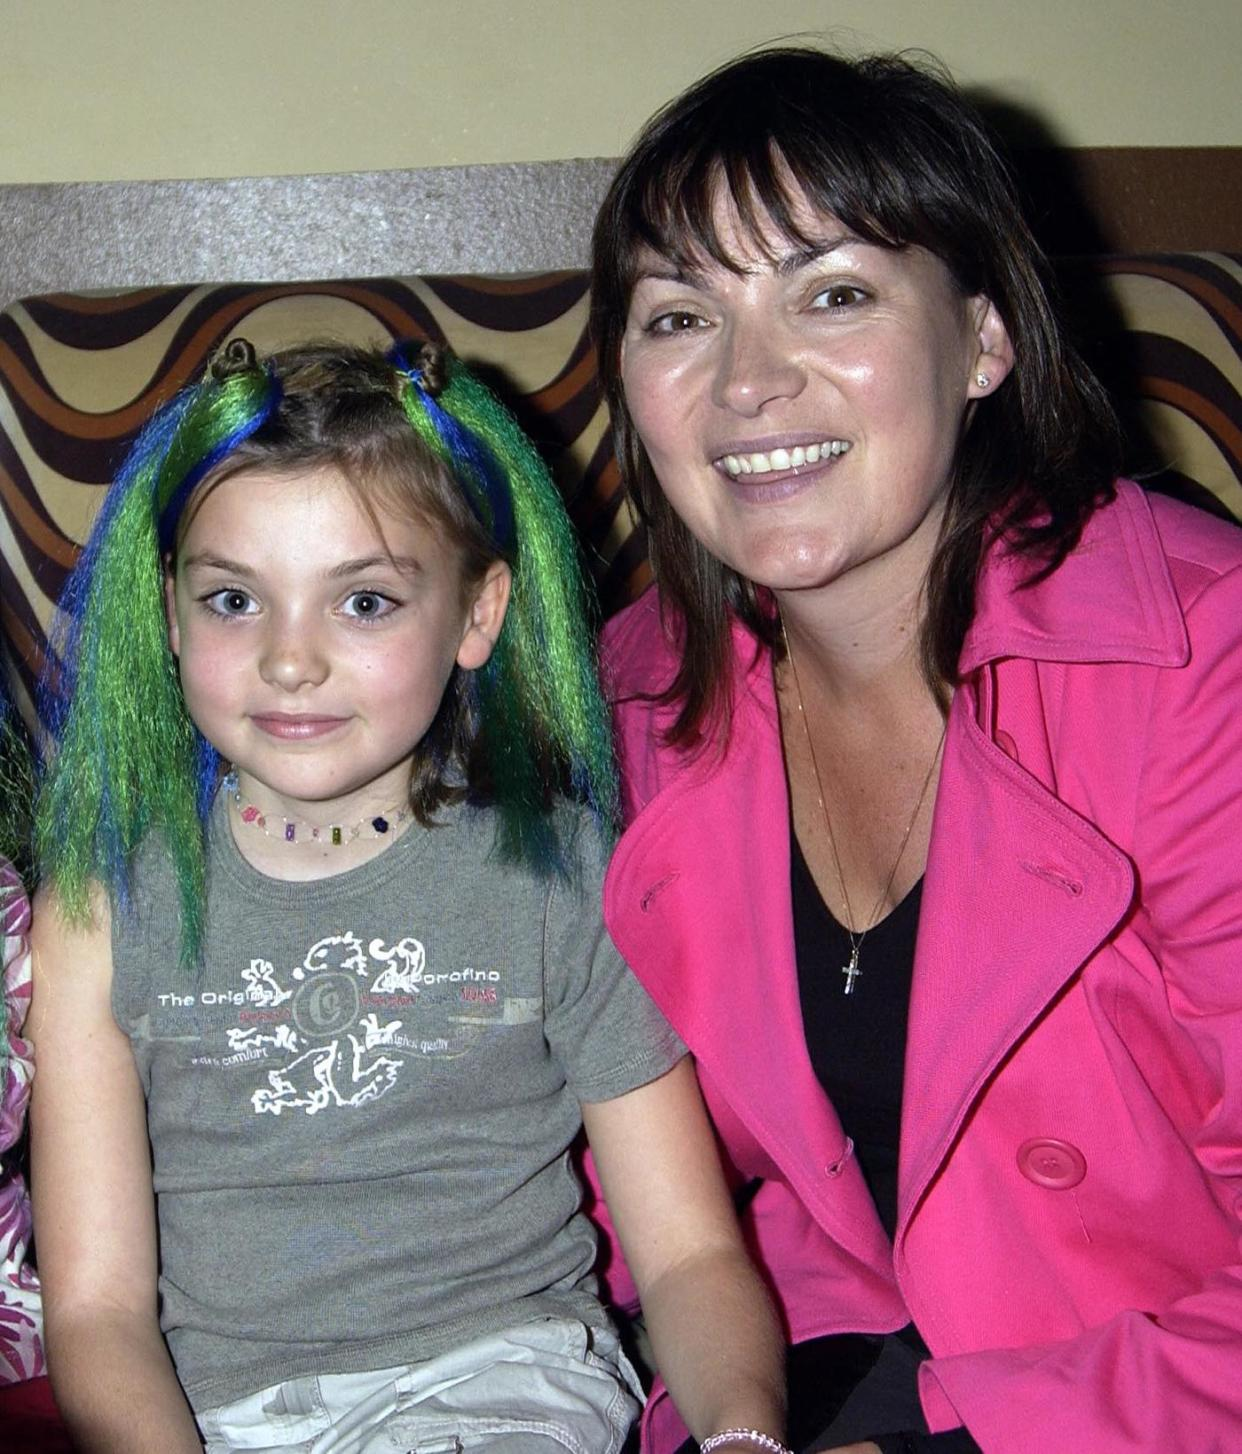 Lorraine Kelly, seen here with a young Rosie, reveals she's loving working with her daughter on their new podcast (Image: Getty Images)